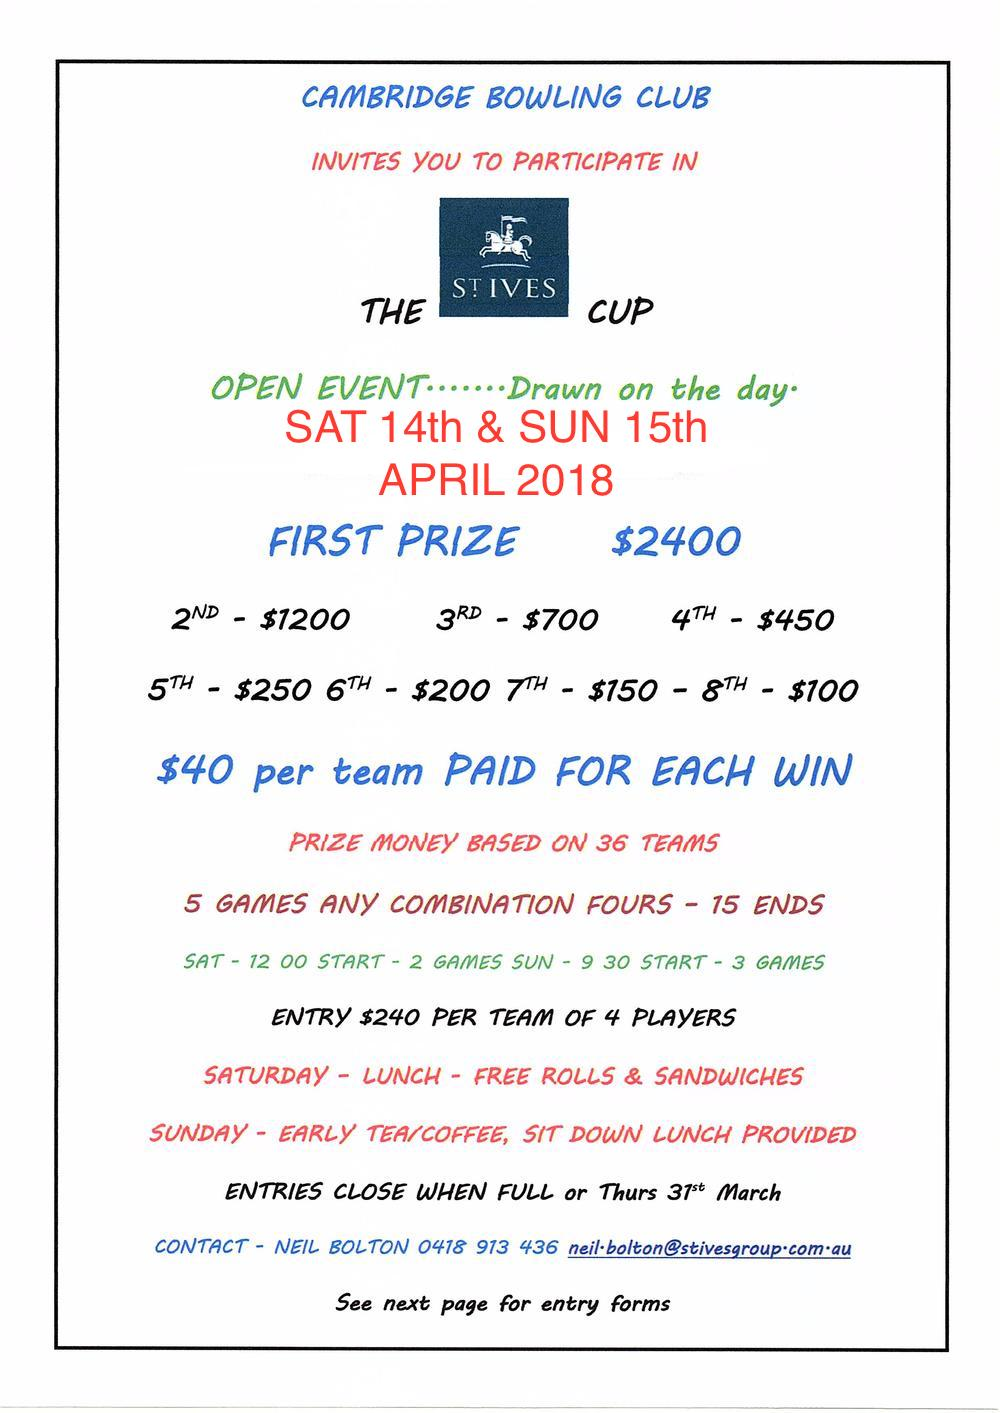 st ives cup2.jpg